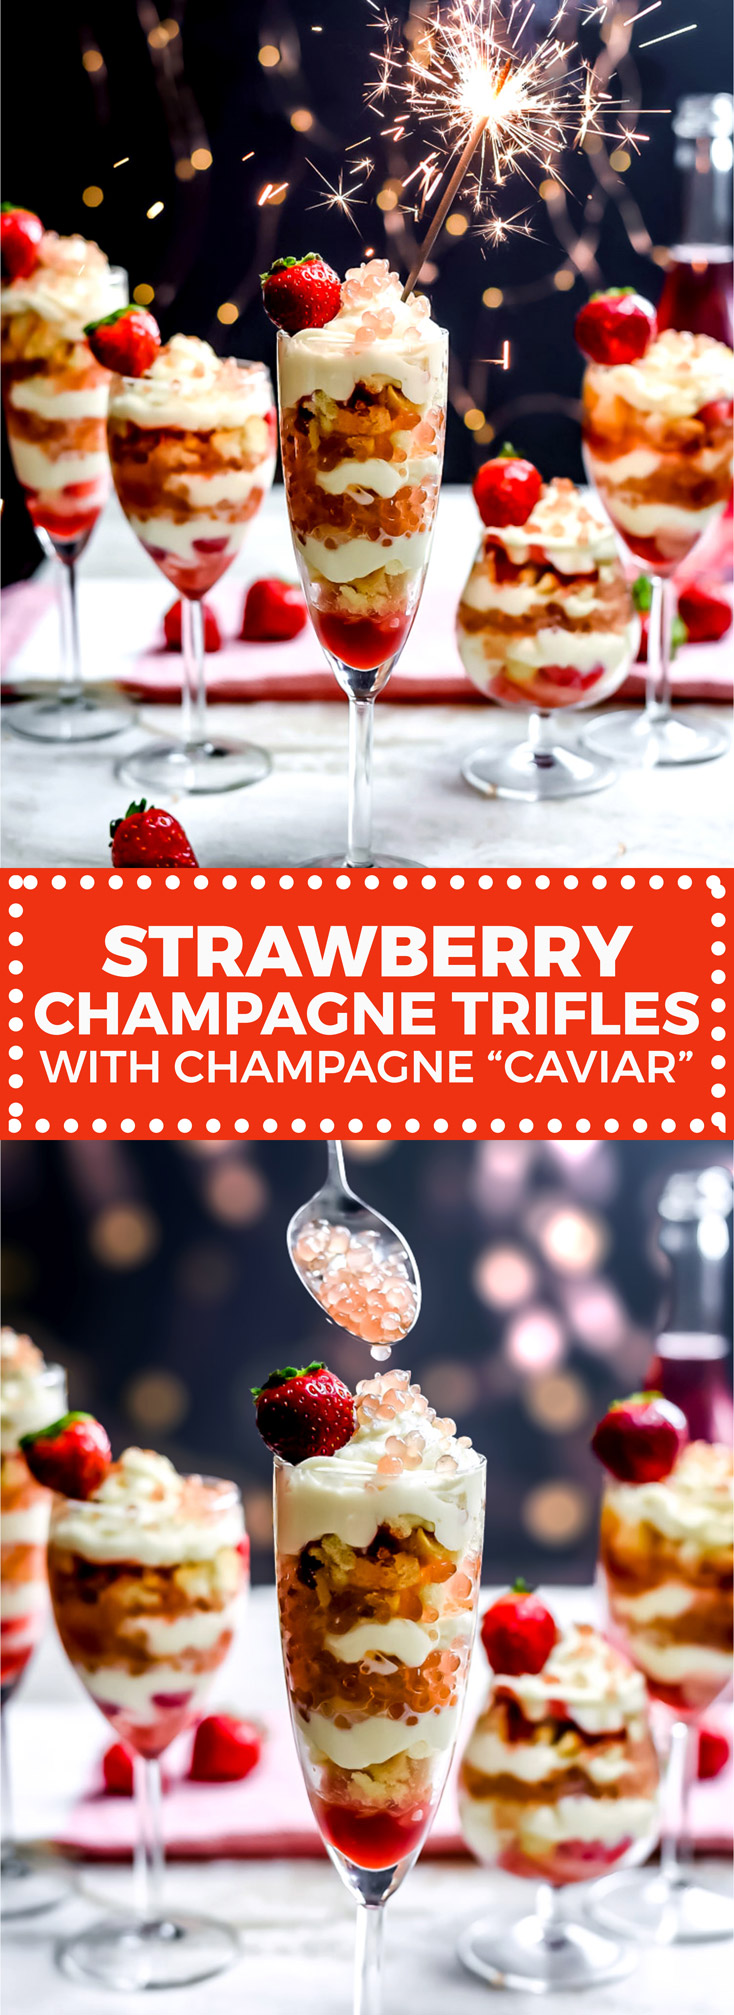 """Strawberry Champagne Trifles with Champagne """"Caviar"""". These layered desserts feature strawberry jam, crushed ladyfingers, champagne-soaked strawberries, an easy mascarpone cream, and gelatin strawberry-champagne spheres that are just as fun to make as they are to eat. All together, the trifles make for the perfect New Years Eve or Valentines' Day dessert. 